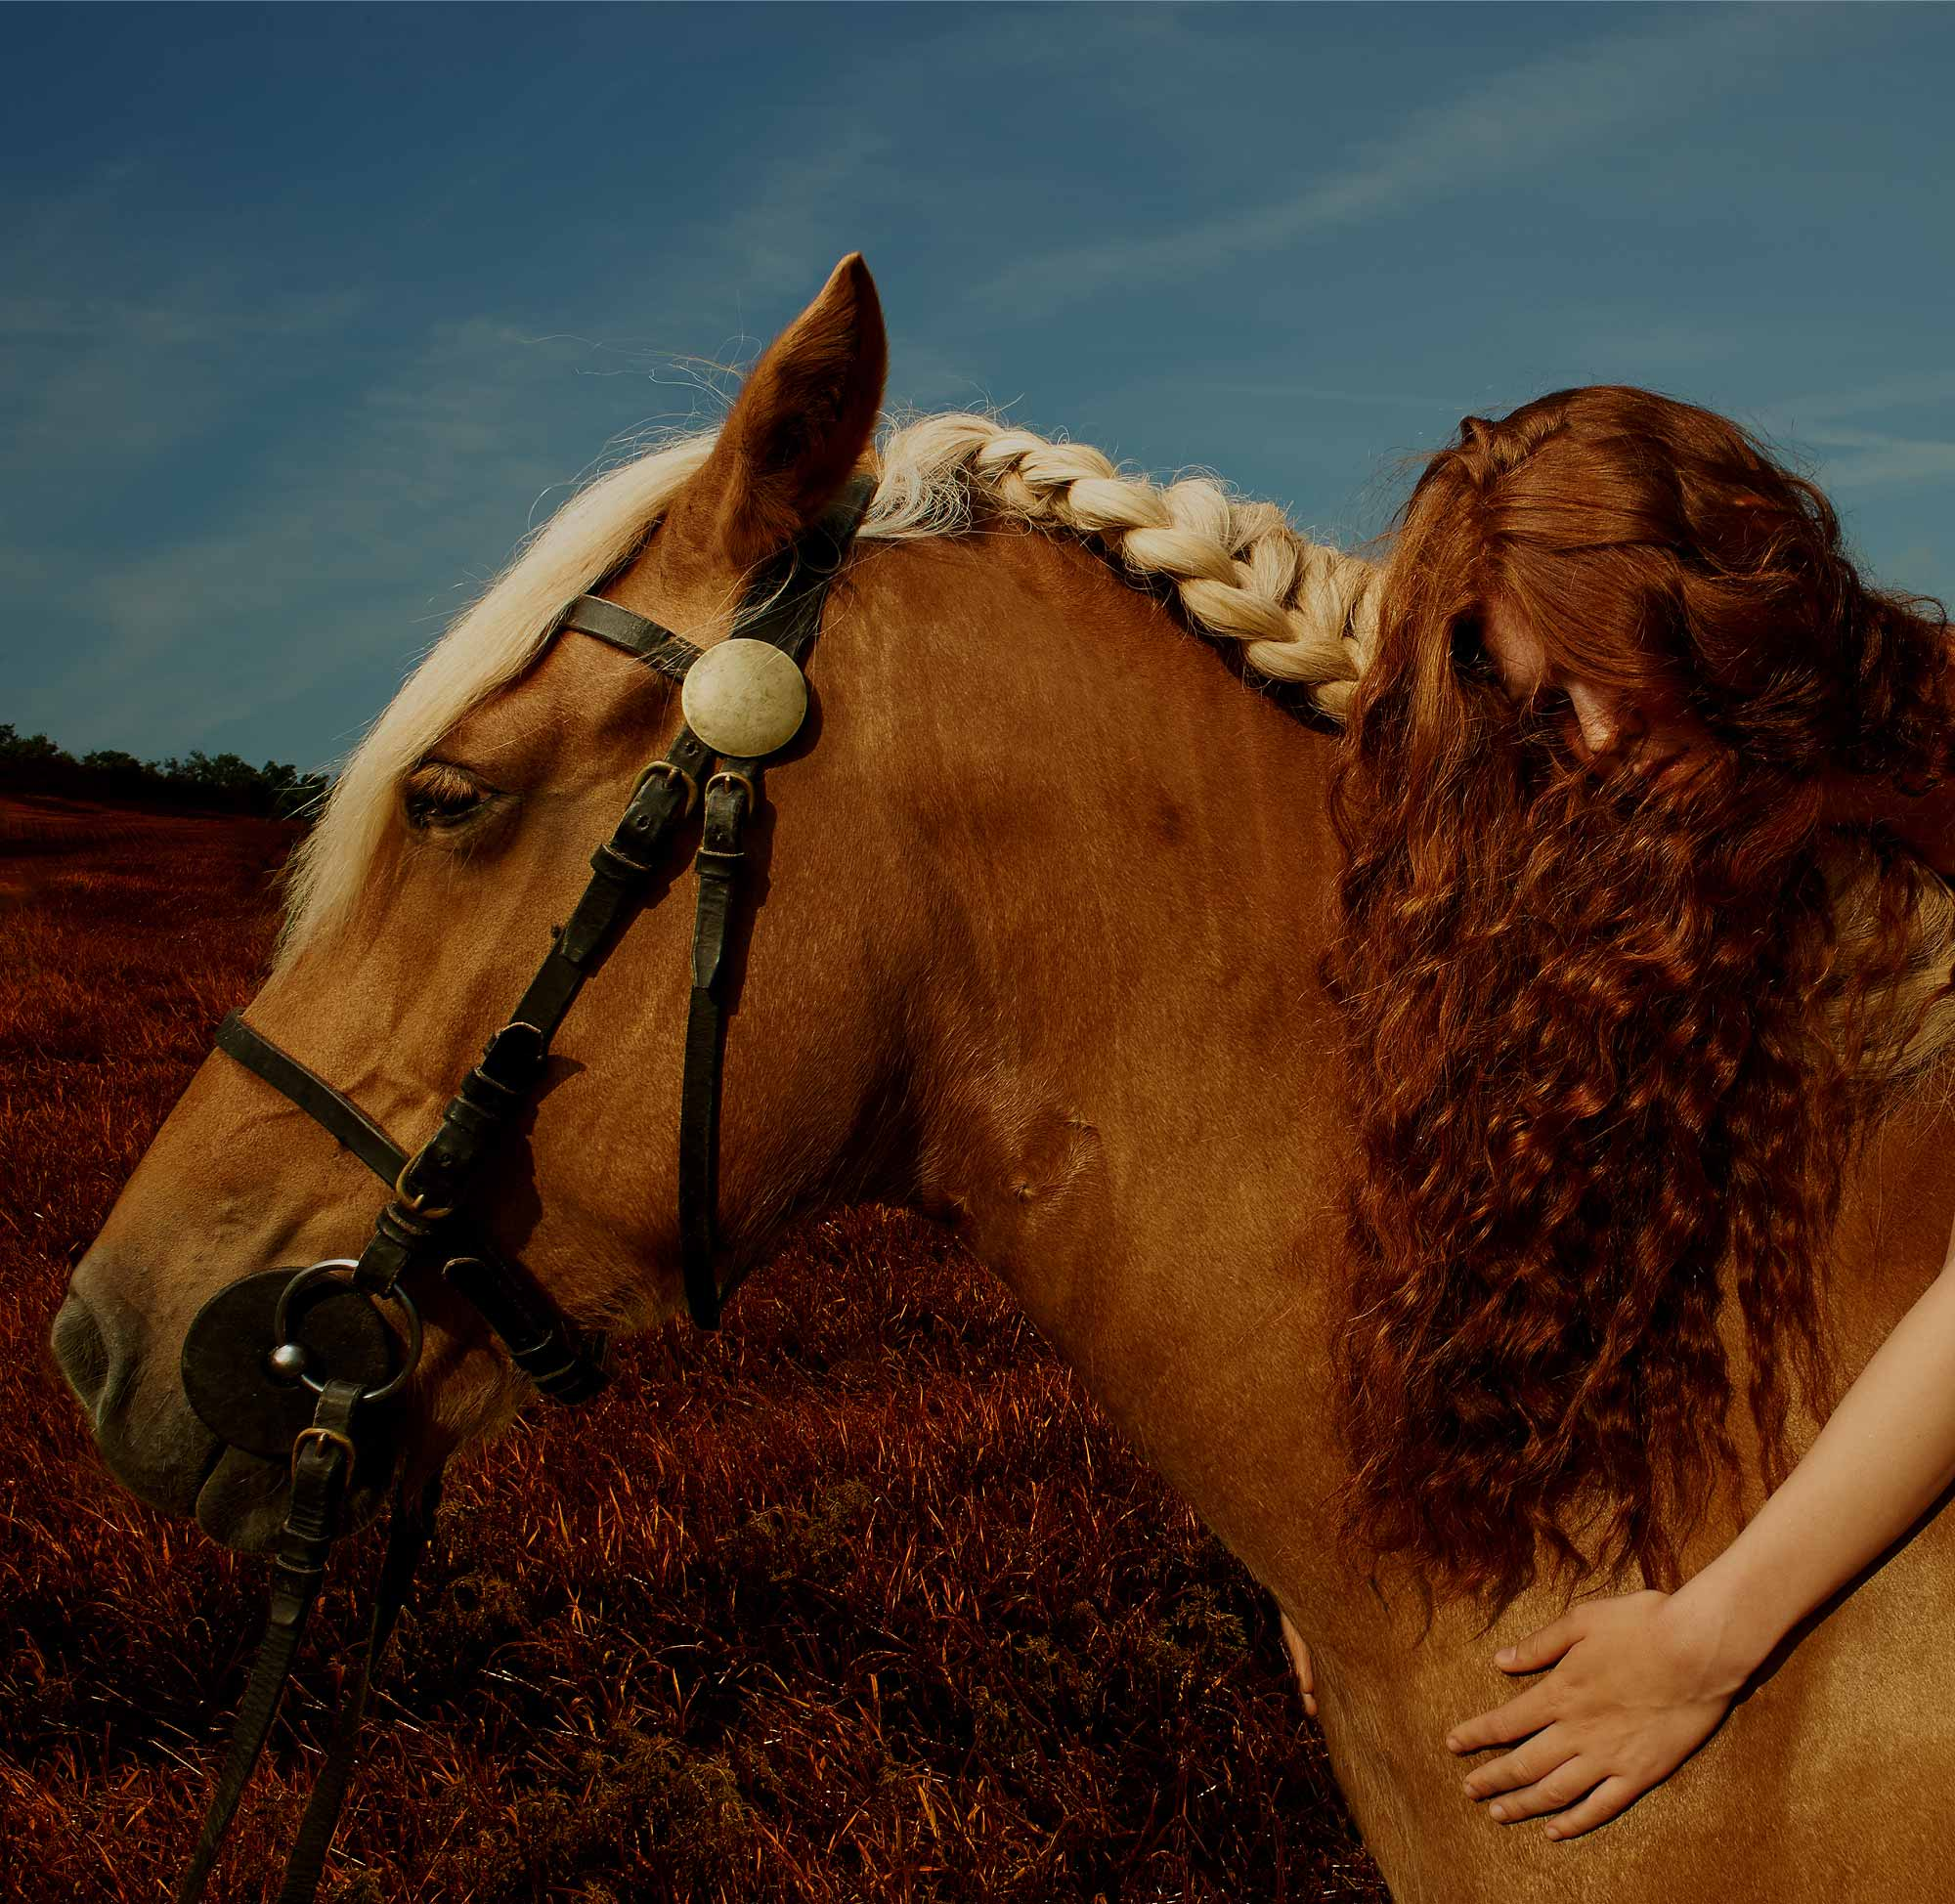 This is another of my muses, Chloée.  I paired her with the most gentle Comtois horse named Pistache who I met on a chance encounter.